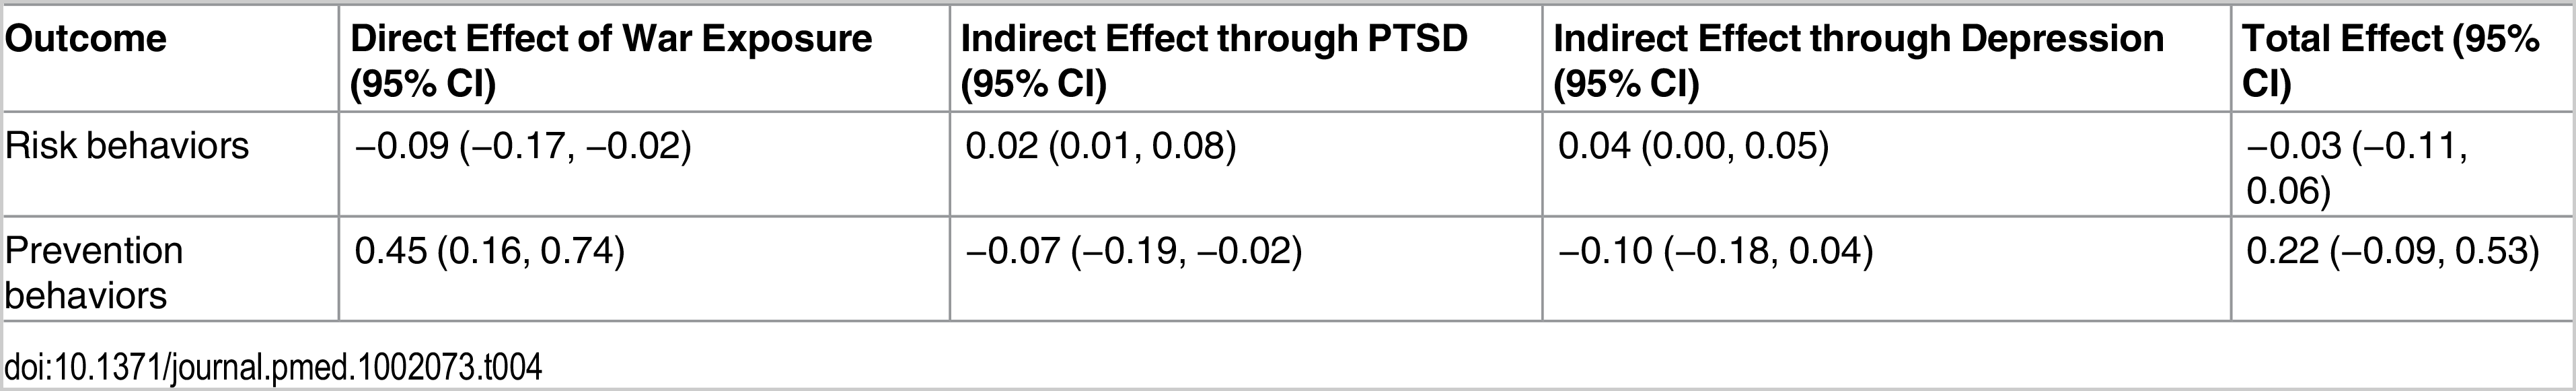 Decomposition of effects of war exposures on EVD risk and prevention behaviors.